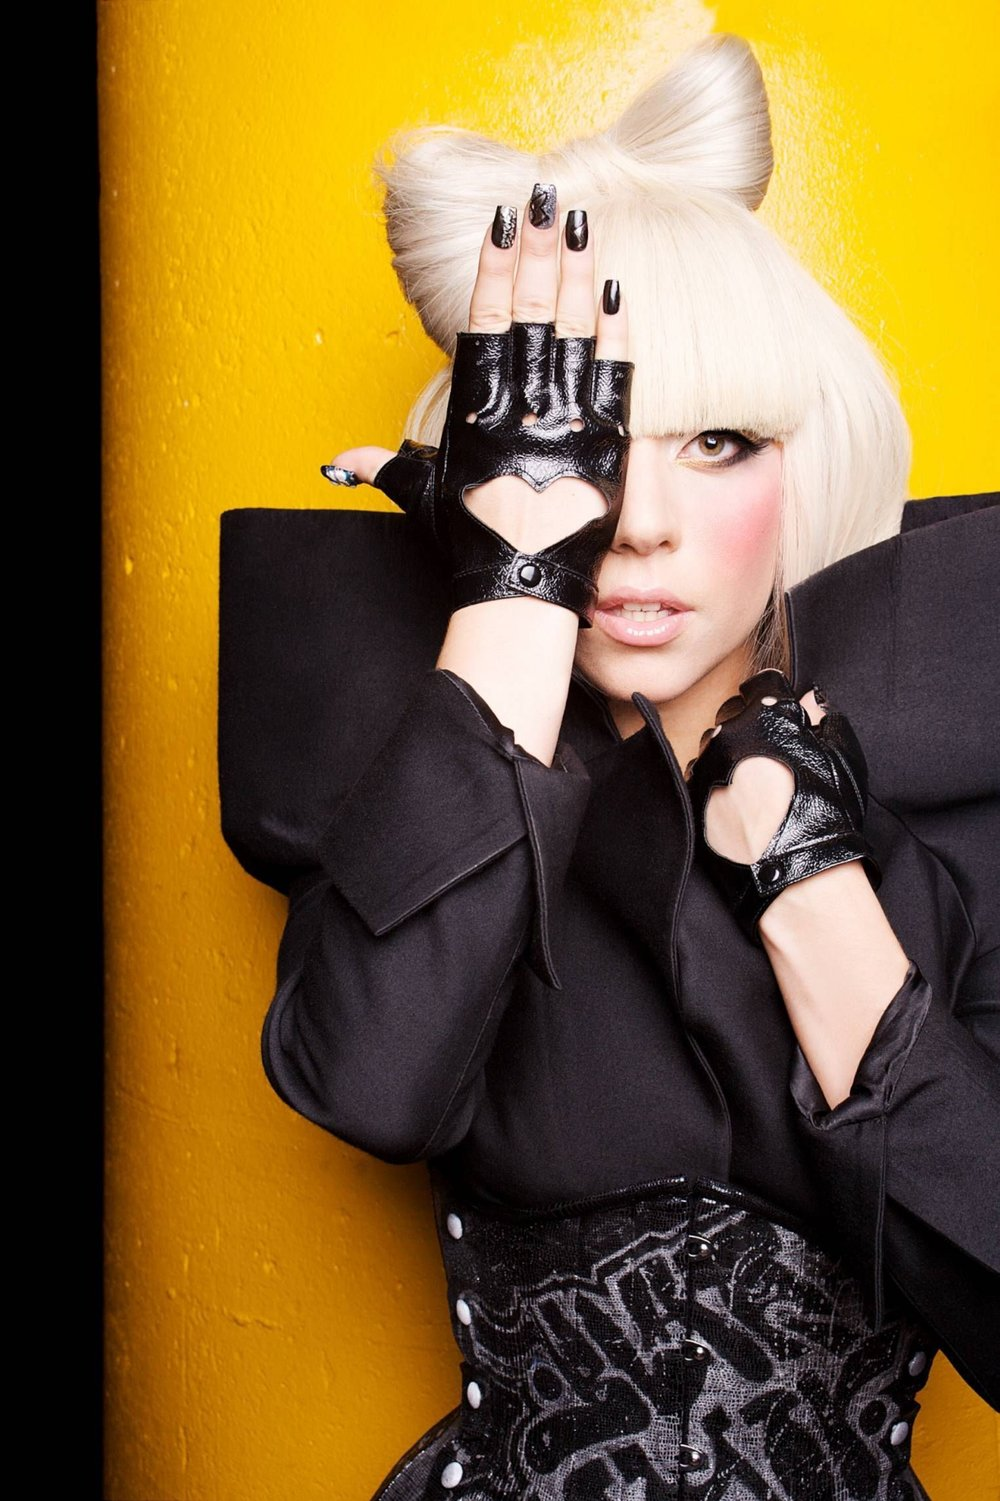 Lady Gaga Wearing Graffiti Corset.jpg